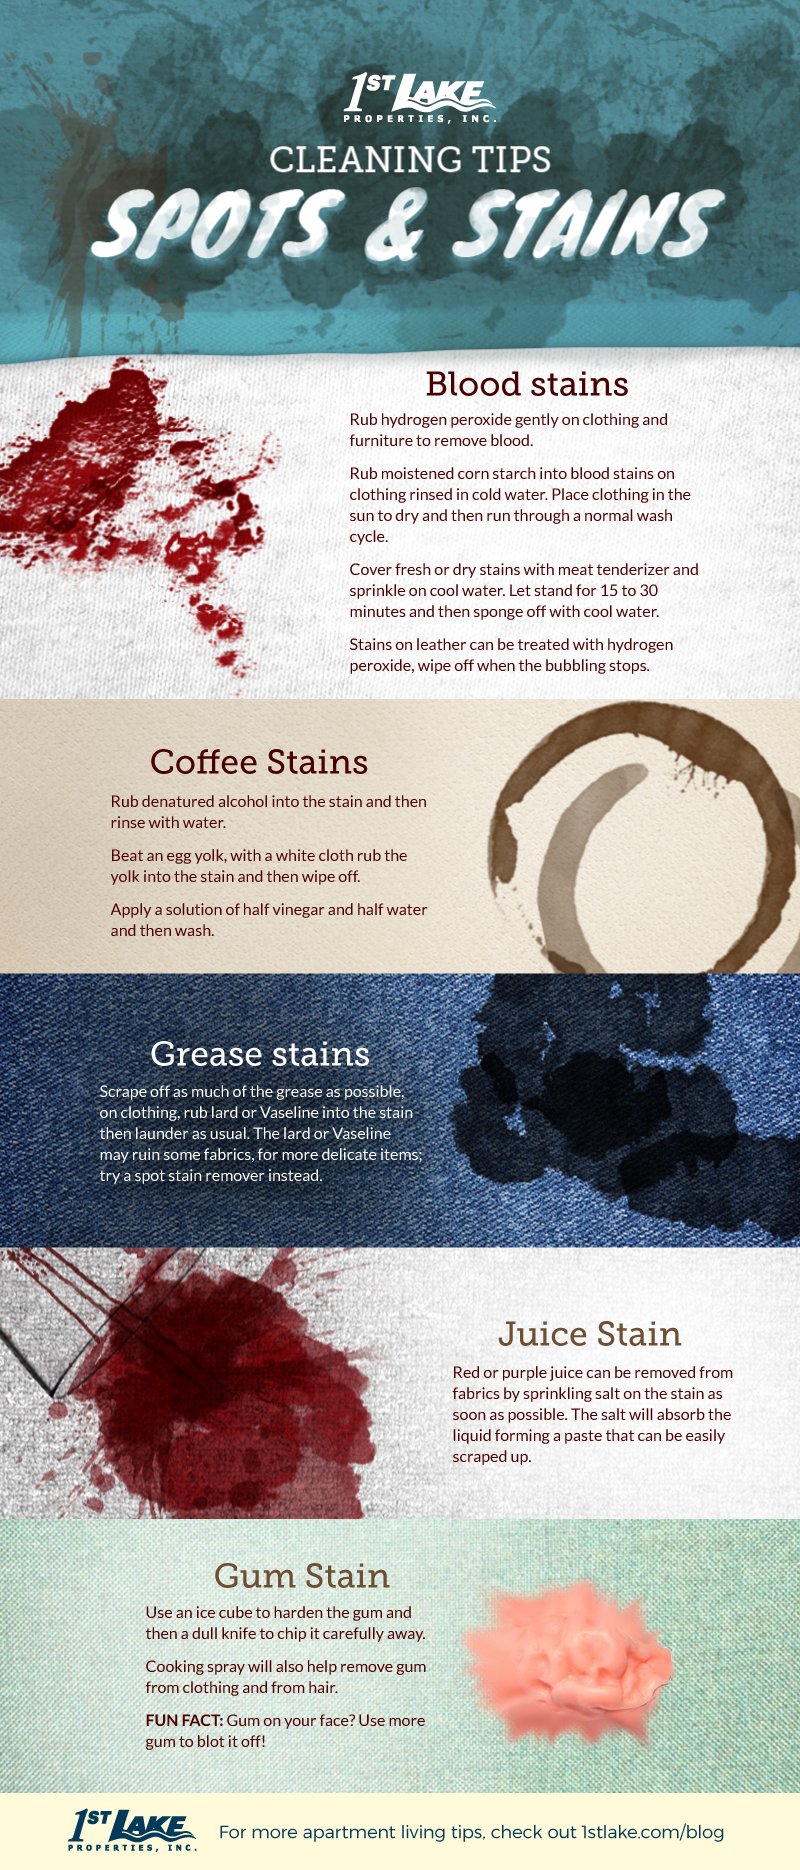 FLP_infographic_spotsandstains_072716_v1